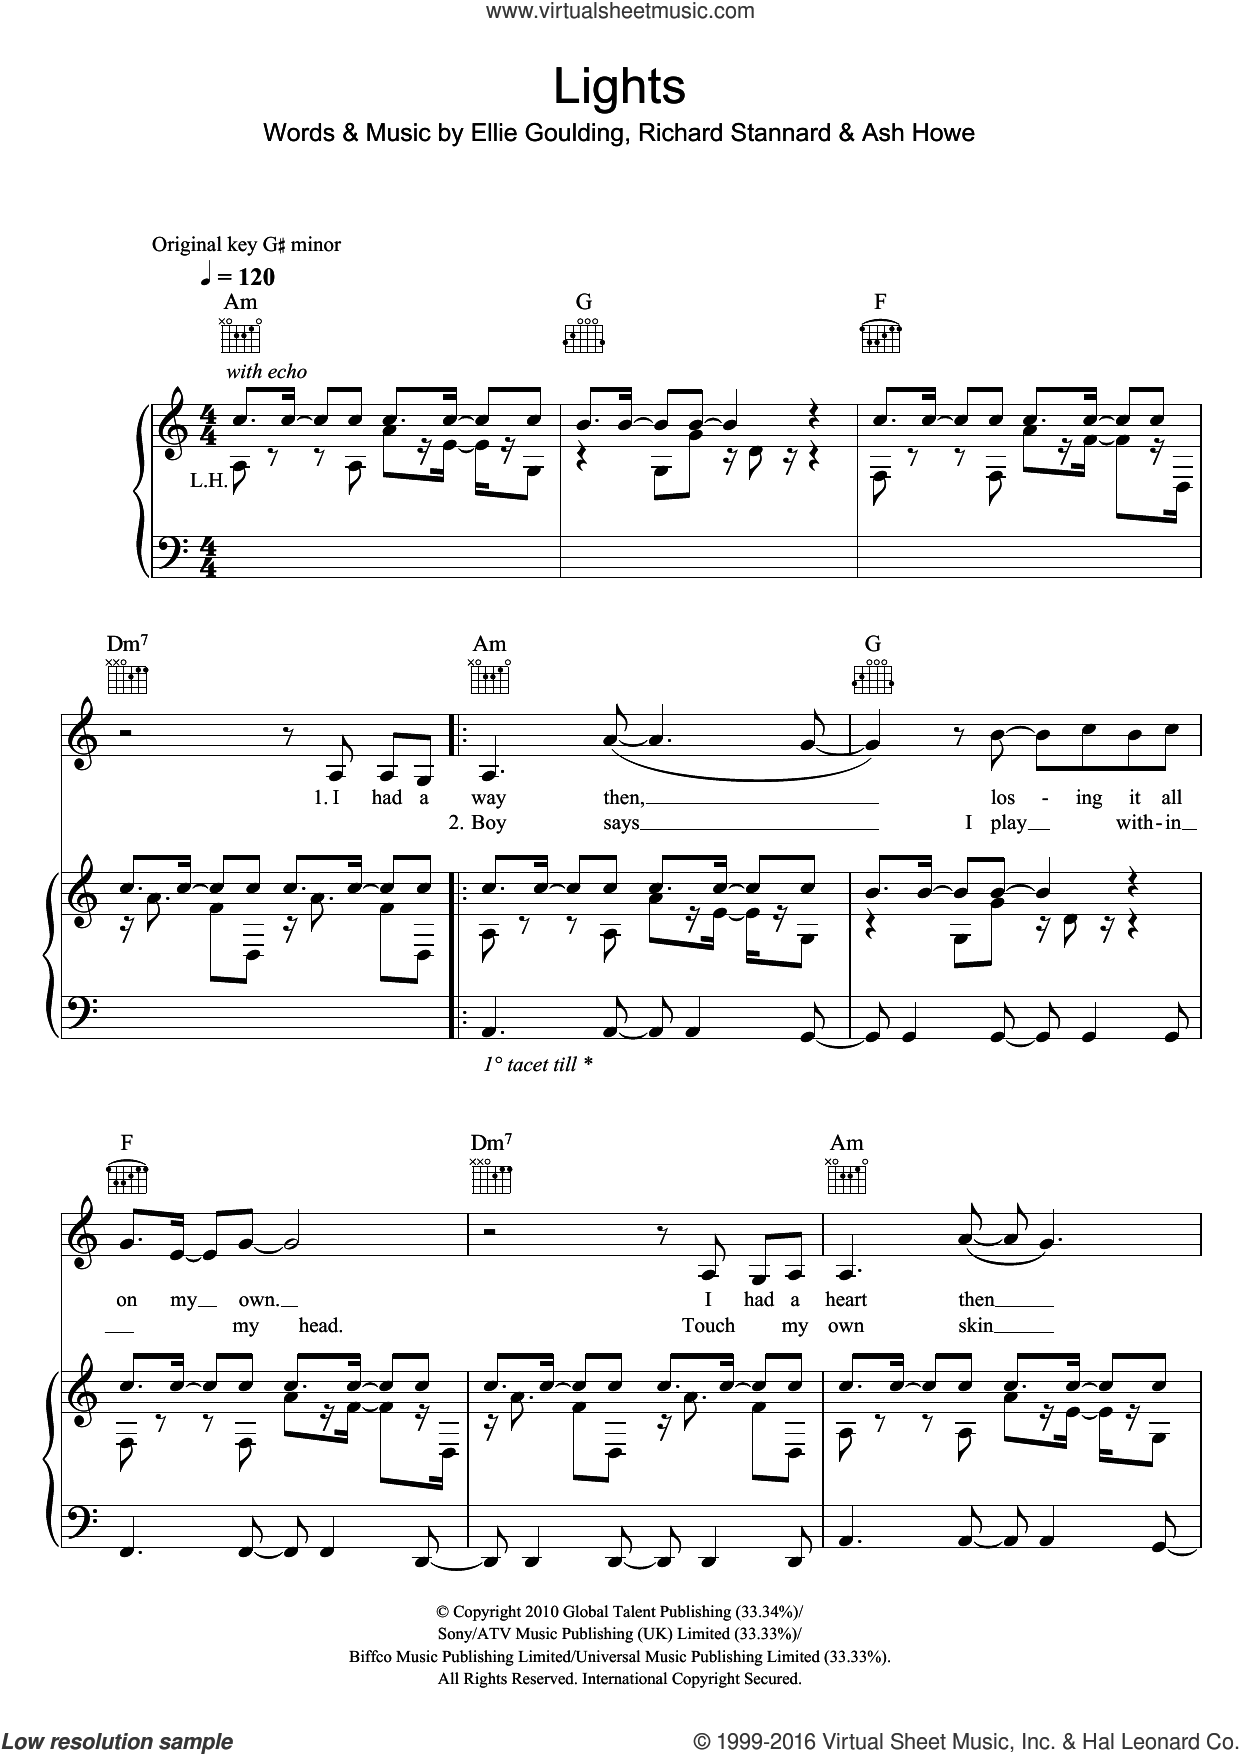 Lights sheet music for voice, piano or guitar by Ellie Goulding, Ash Howe and Richard Stannard, intermediate skill level